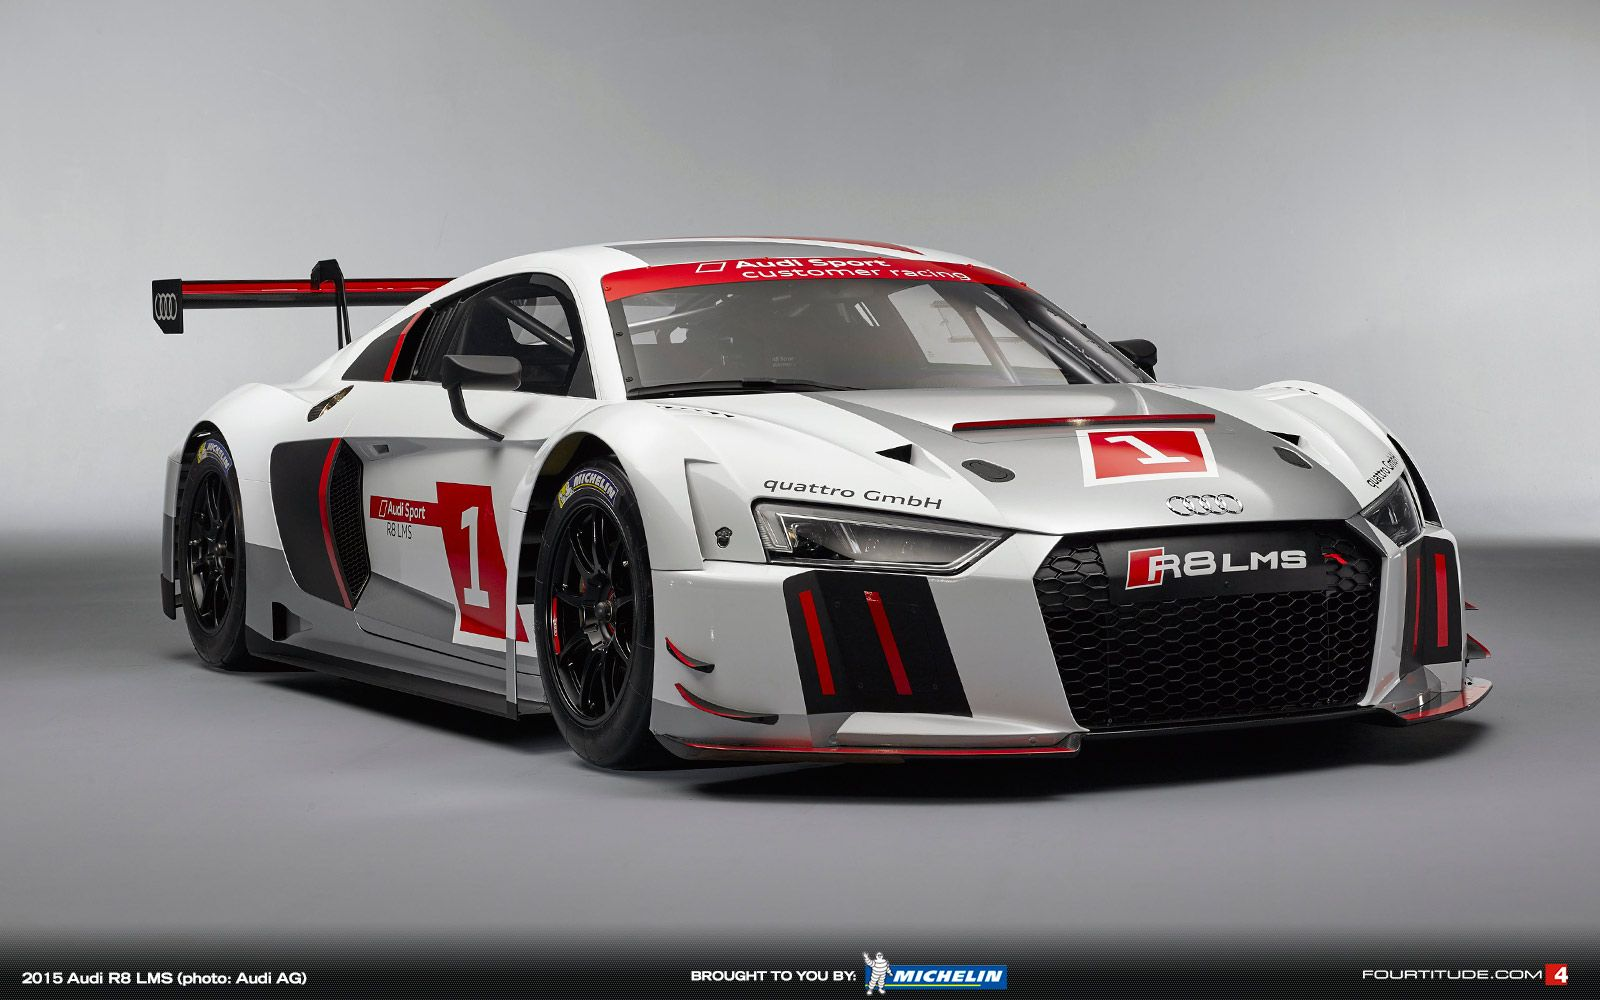 Audi Before Race Debut Of The Audi R8 Lms And First 24 Hour Races Of The Gt Season Audi R8 New Audi R8 Audi Cars